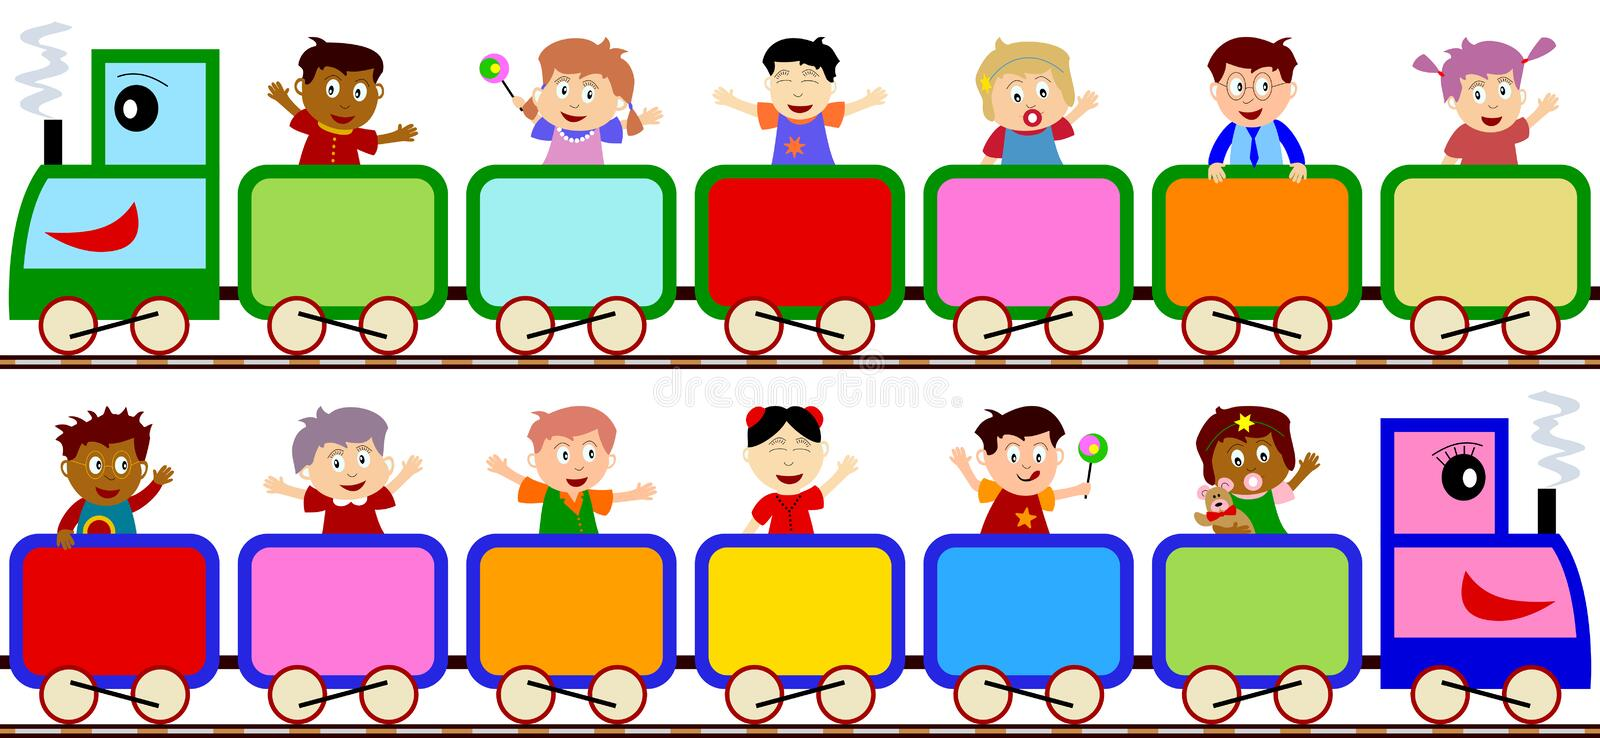 Kids on Train Banners. Kids on a train (boy and girl version), isolated on white background. Useful as a banner, page for your scrapbook and greeting cards. Eps vector illustration